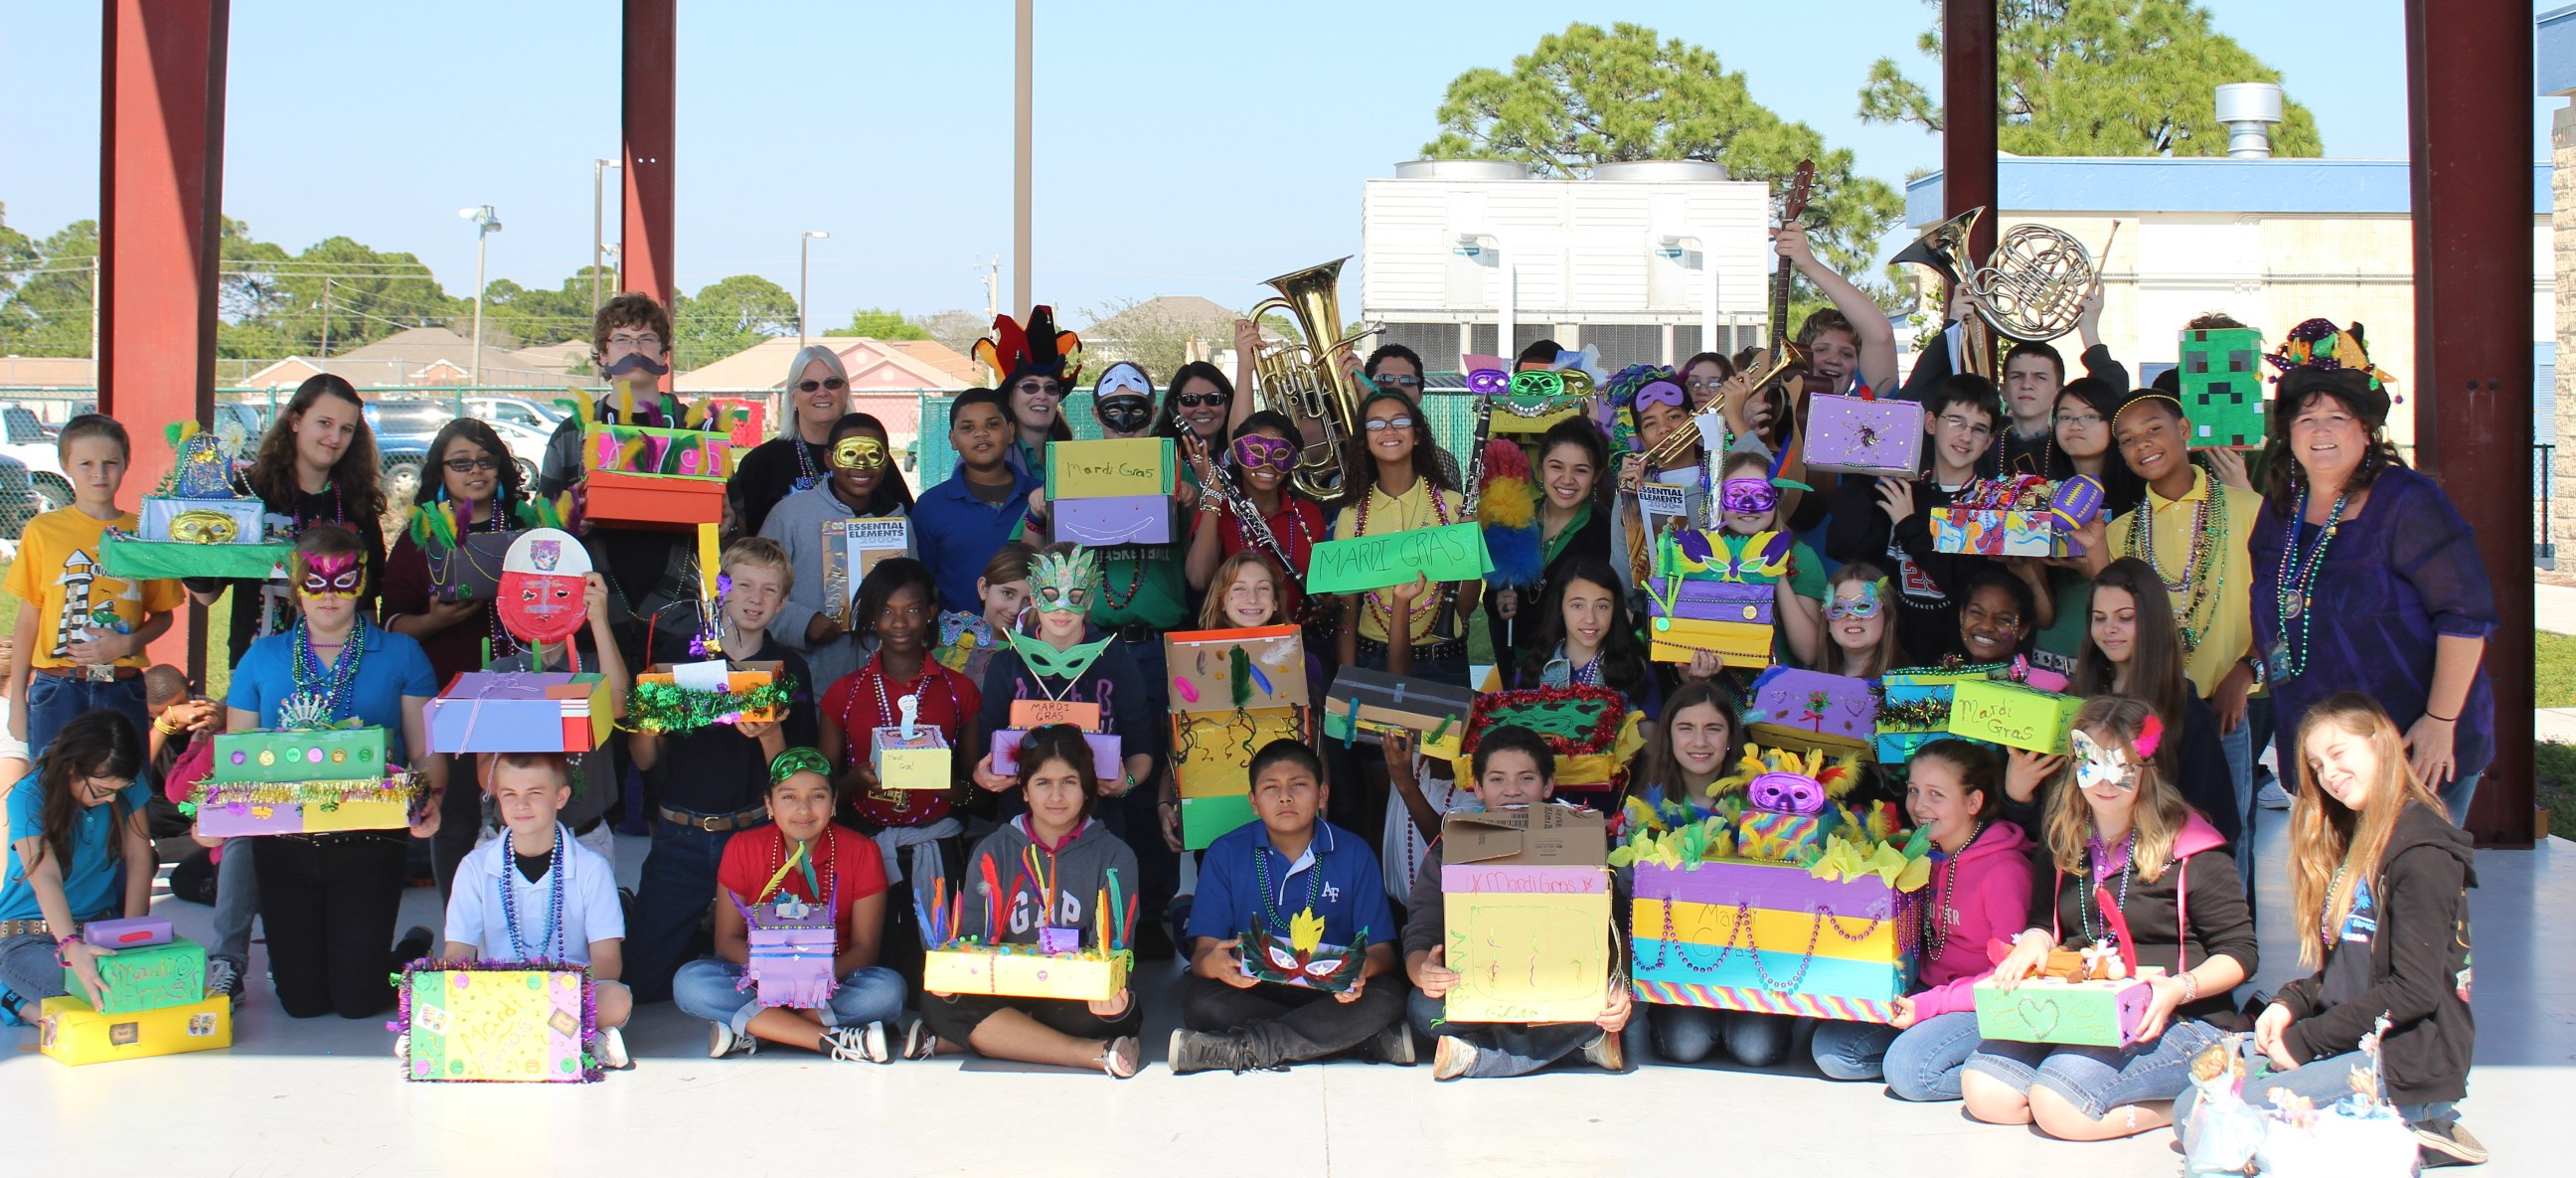 Northport students learn about Mardi Gras traditions